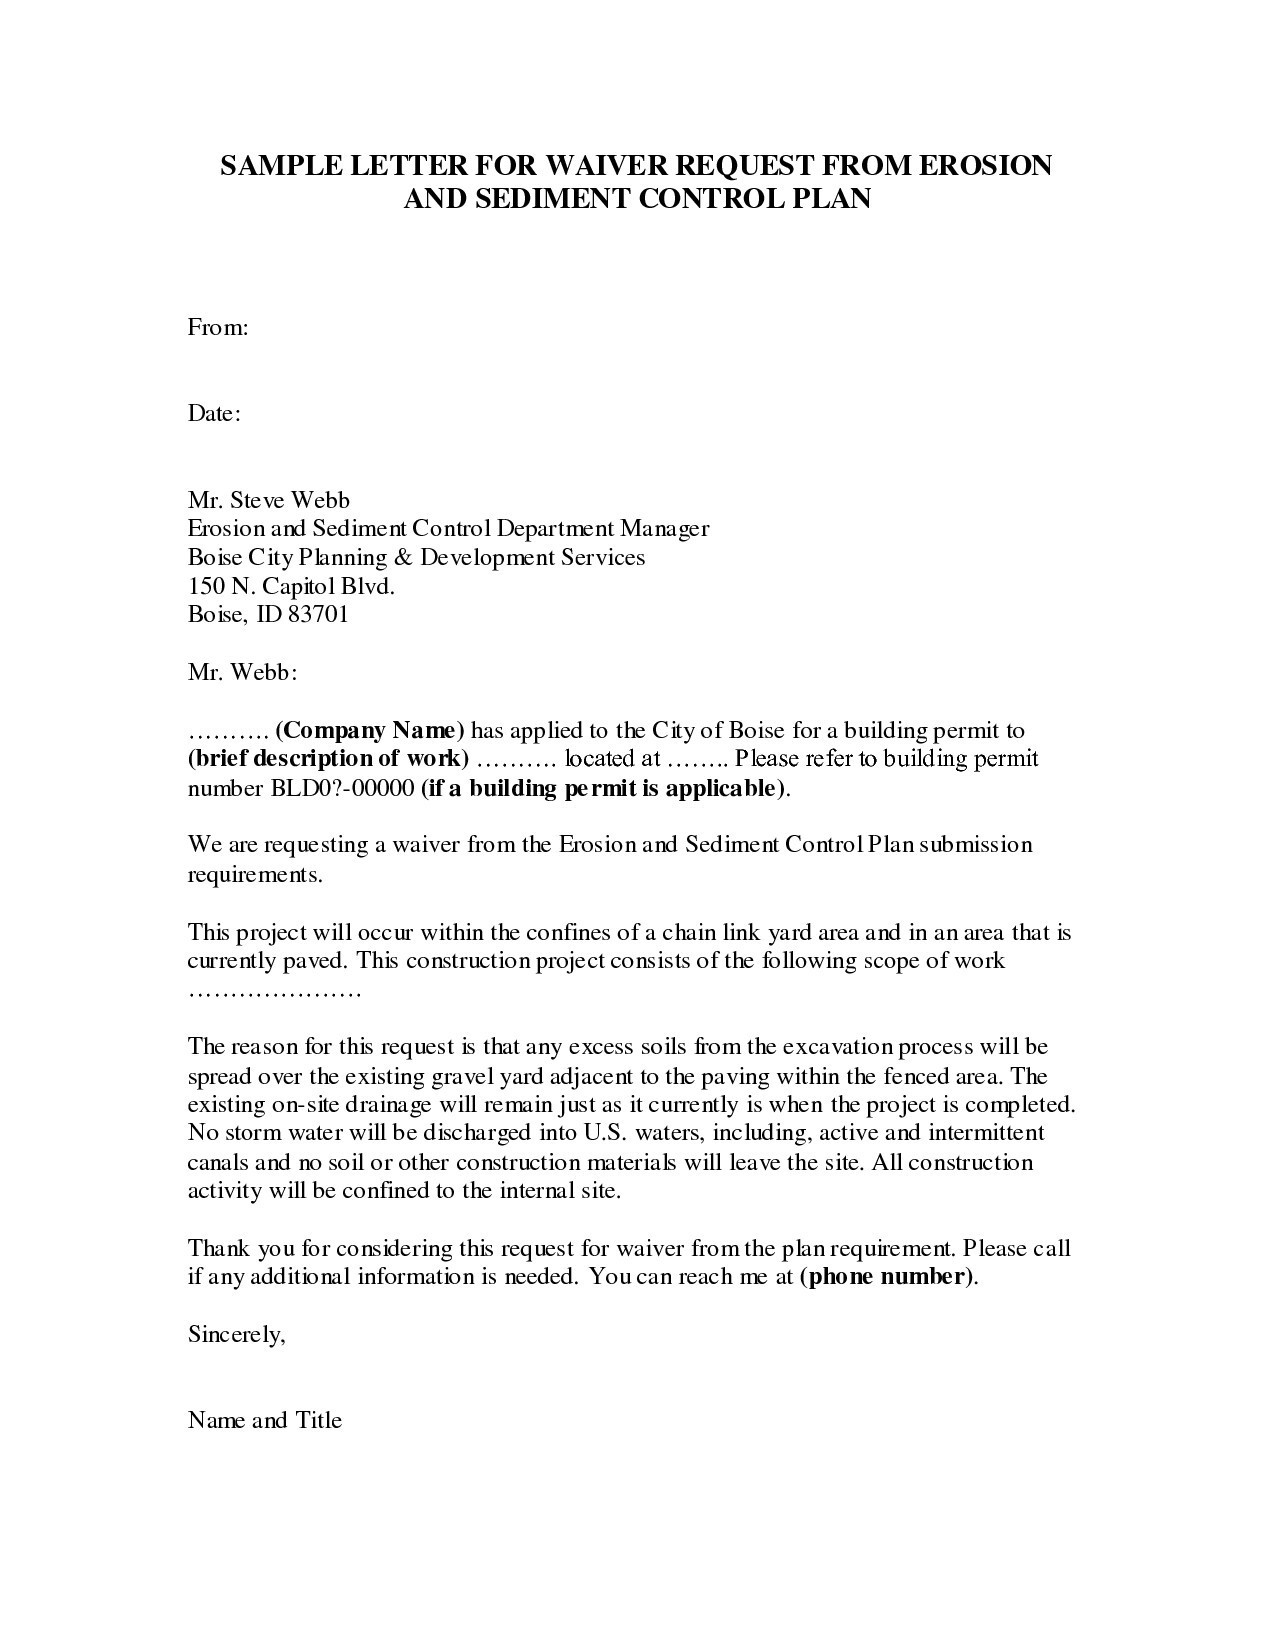 Fire Employee Letter Template - Save Sample A Job Termination Letter